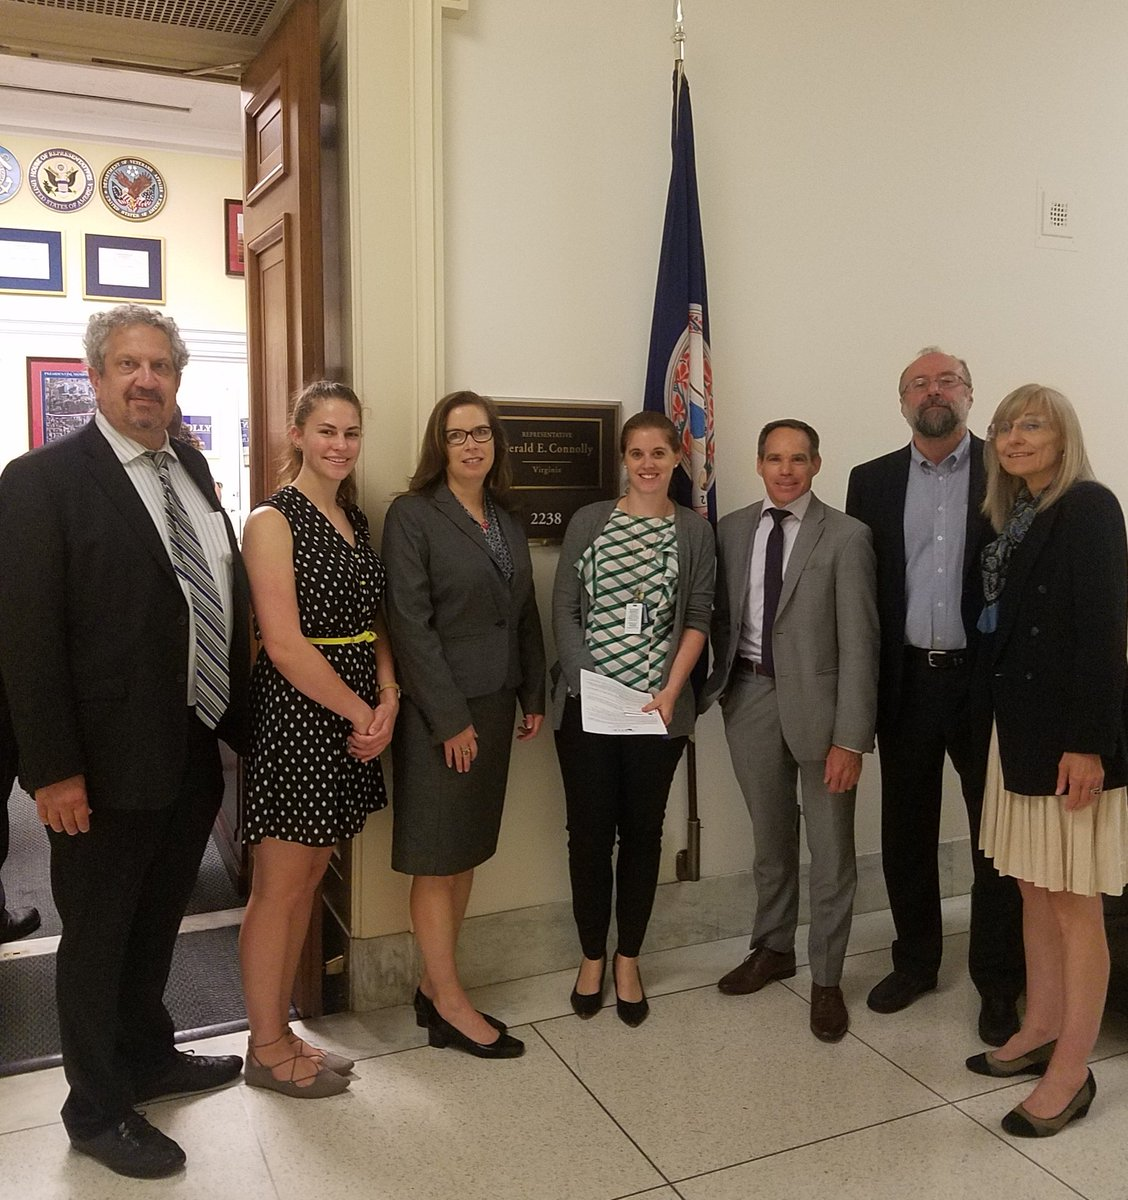 Meeting with Gerry Connolly's office